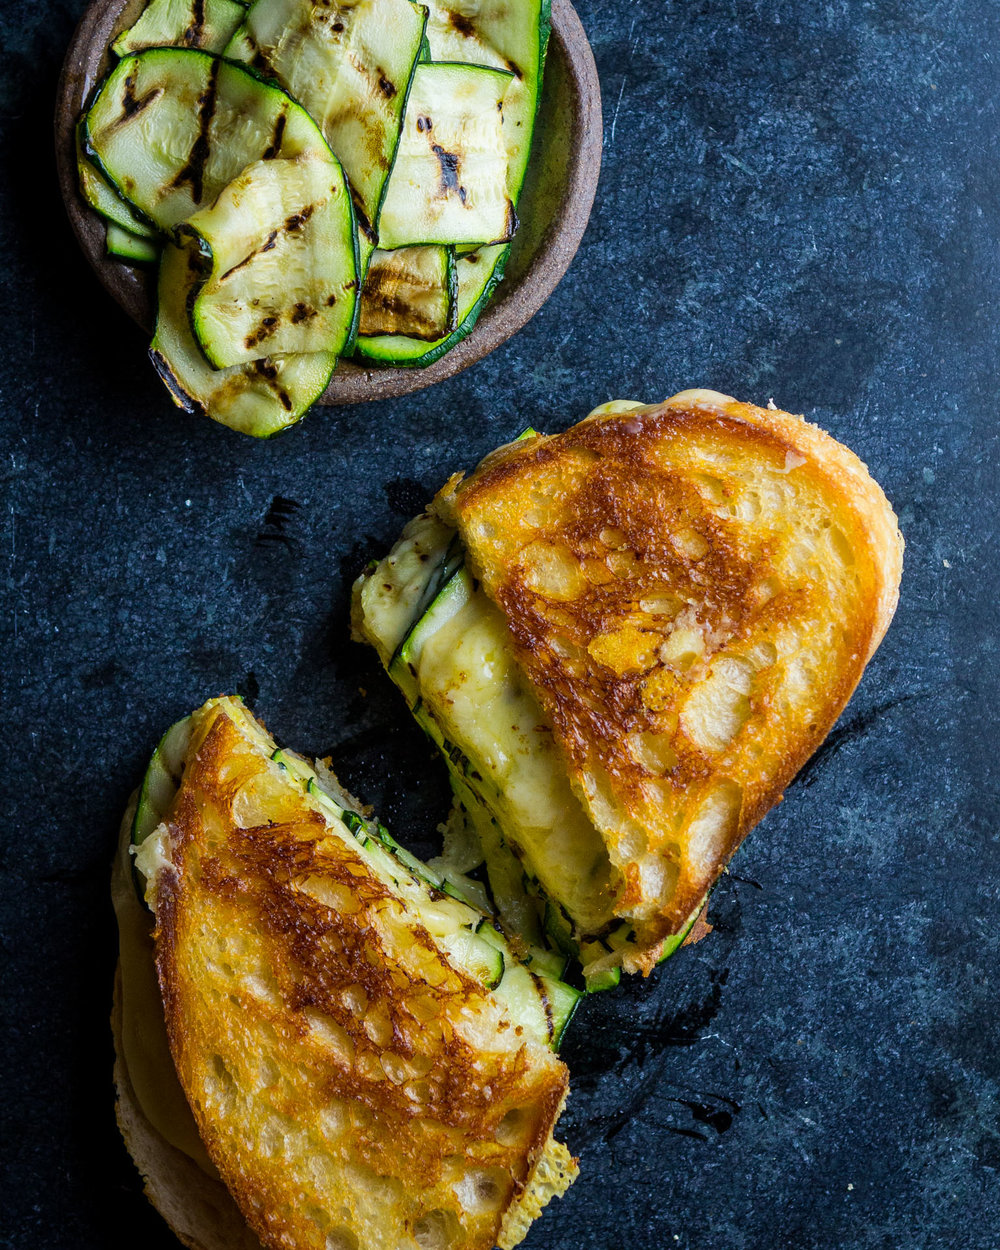 zucchini-grilled-cheese-sandwich-4.jpg